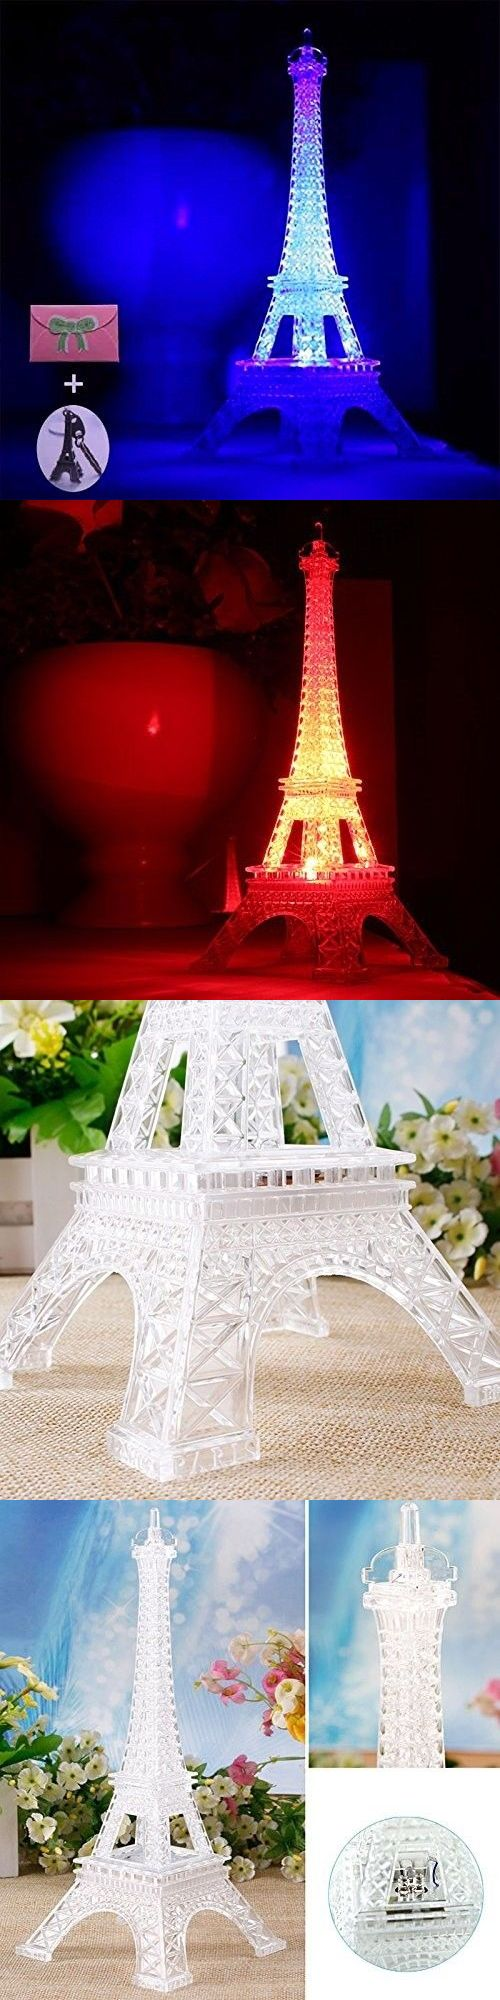 Night Lights 20702: Eiffel Tower Led Desk Lamp Home Bedroom Decor Kitchen Color Changing Hallway -> BUY IT NOW ONLY: $31.99 on eBay!